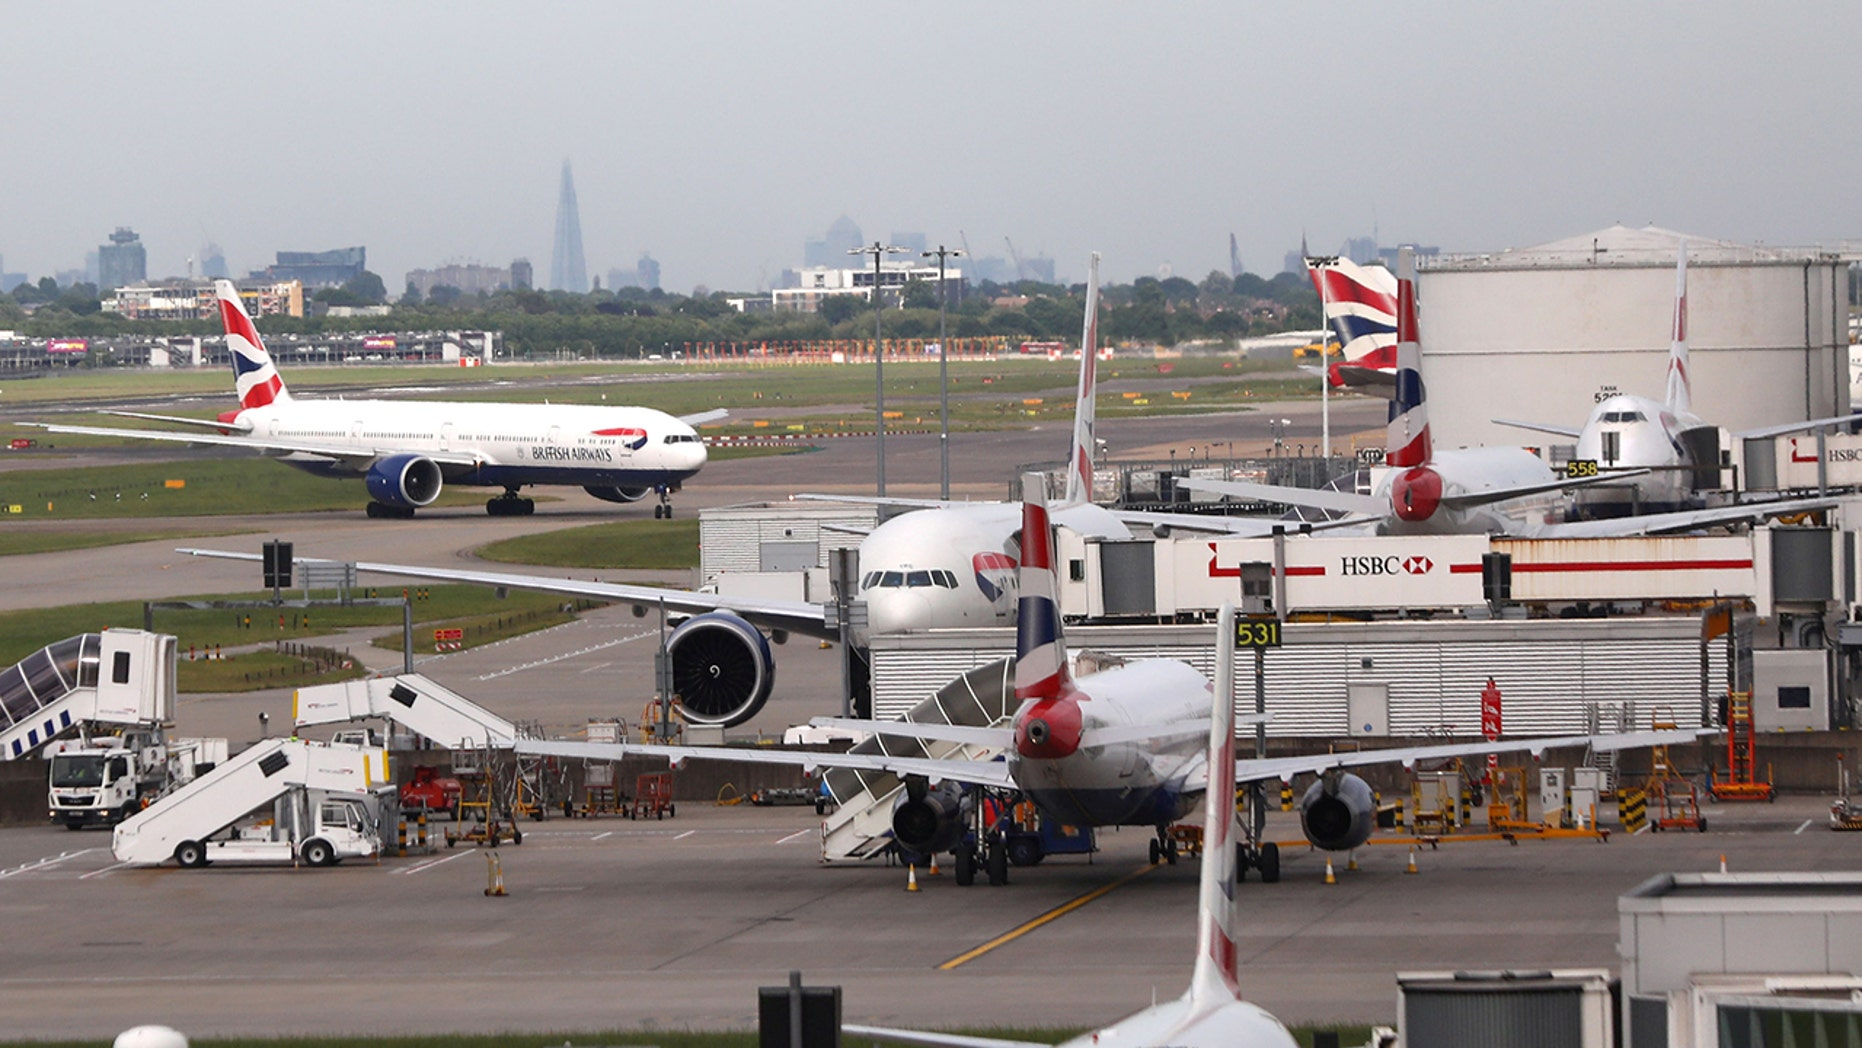 A British Airways flight attendant has reportedly accused a male crew member of raping her during an off-duty gathering in Singapore.